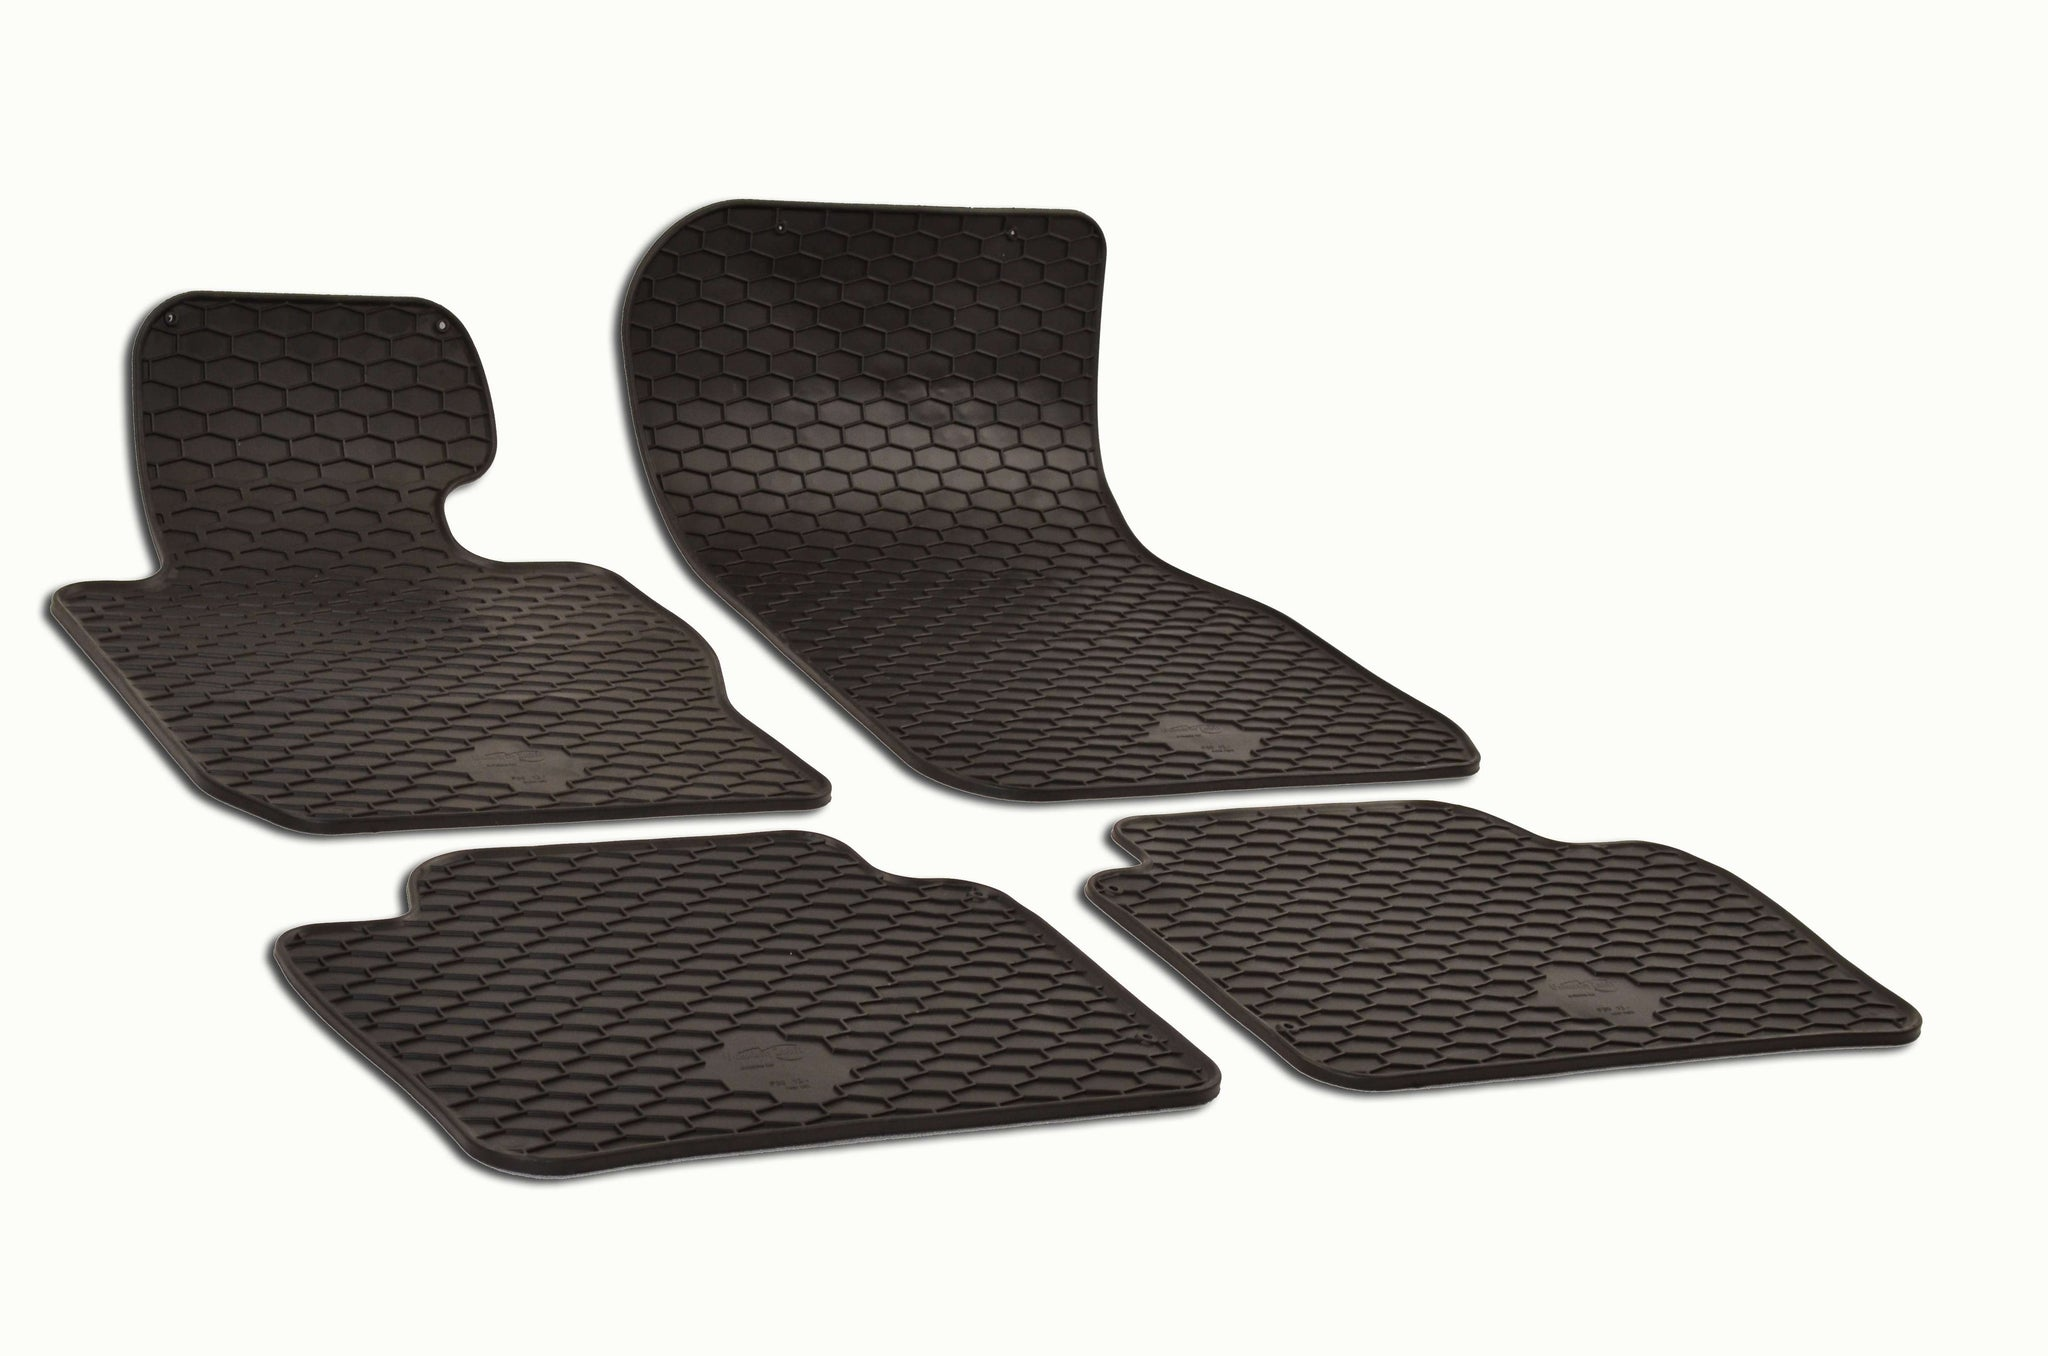 BMW 435i 2014 F32 Coupe Set of 4 Black Rubber OE Fit All Weather Floor Mats